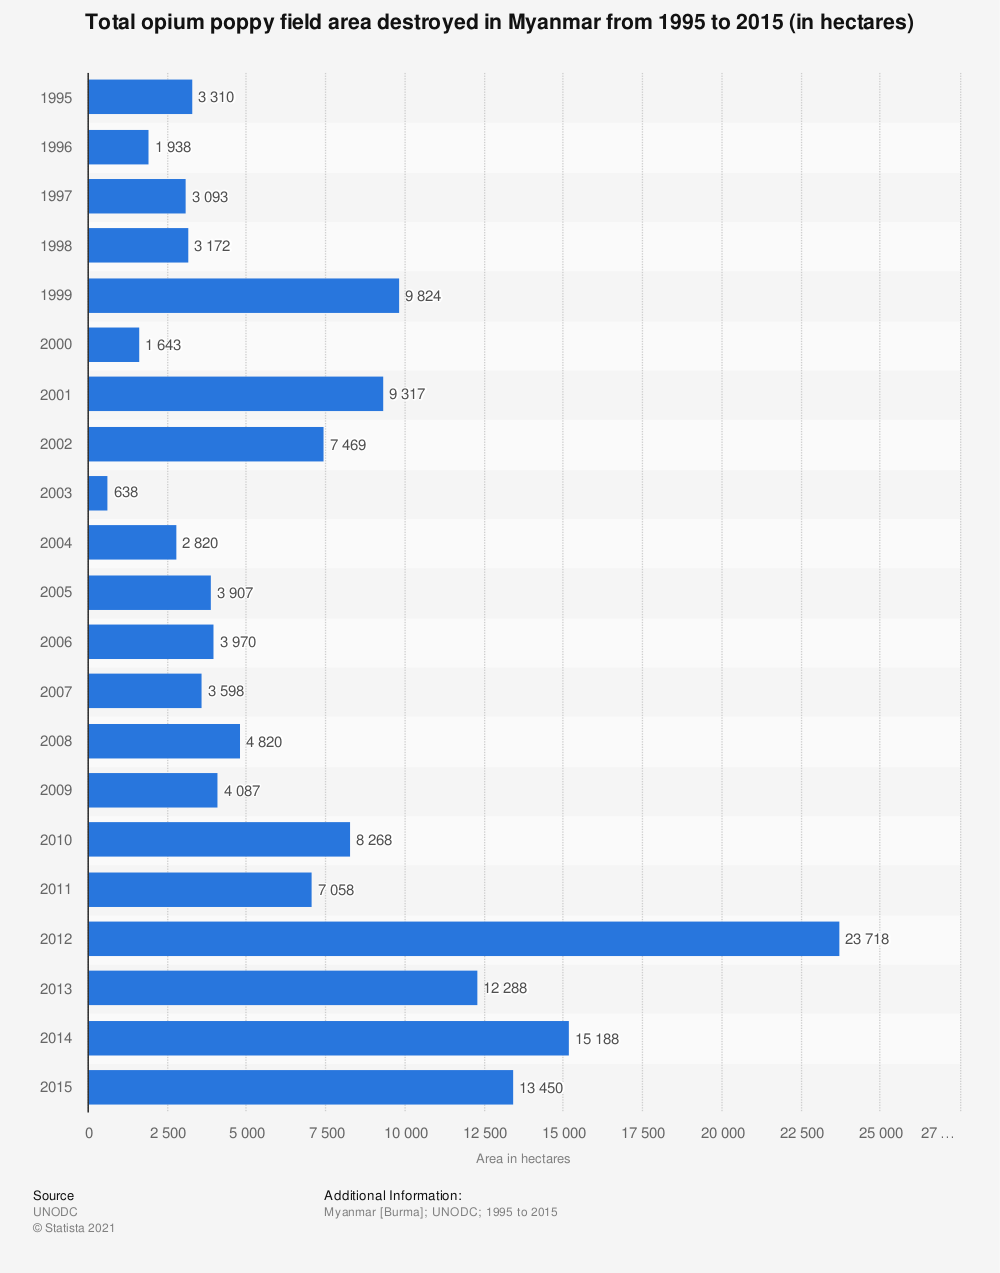 Statistic: Total opium poppy field area destroyed in Myanmar from 1995 to 2015 (in hectares) | Statista